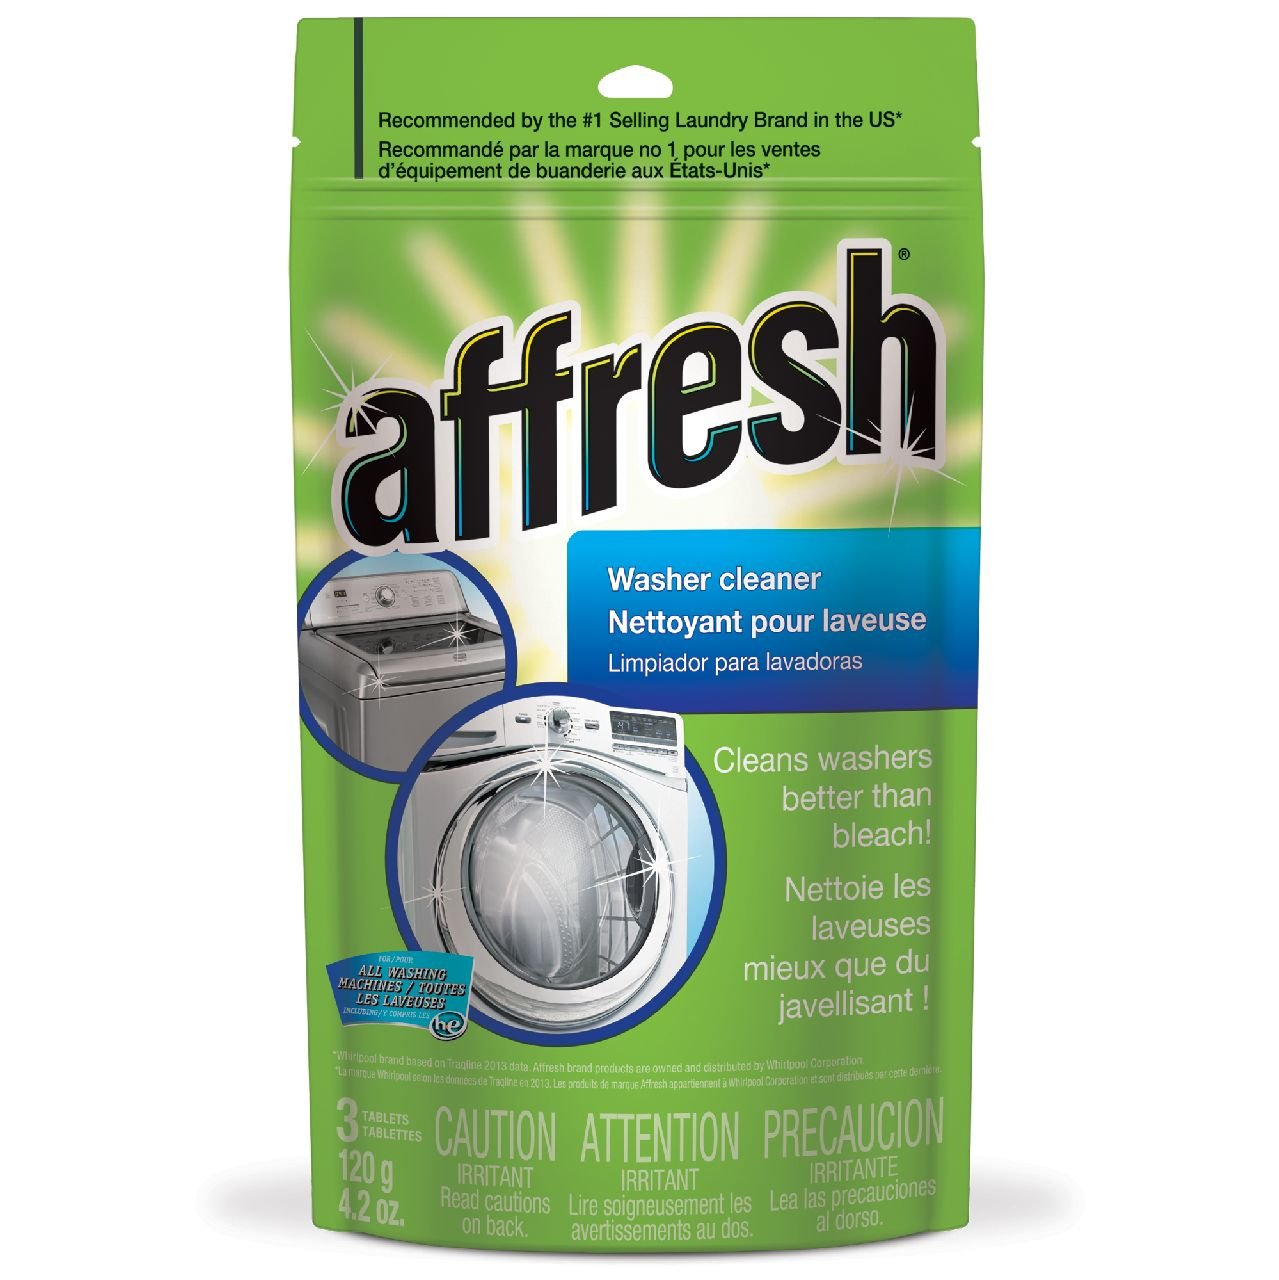 Whirlpool Washer Machine Parts Diagram Duet Ghw Frontload Washing Repair Guide Affresh High Efficiency Cleaner 3 Tablets 42 Ounce